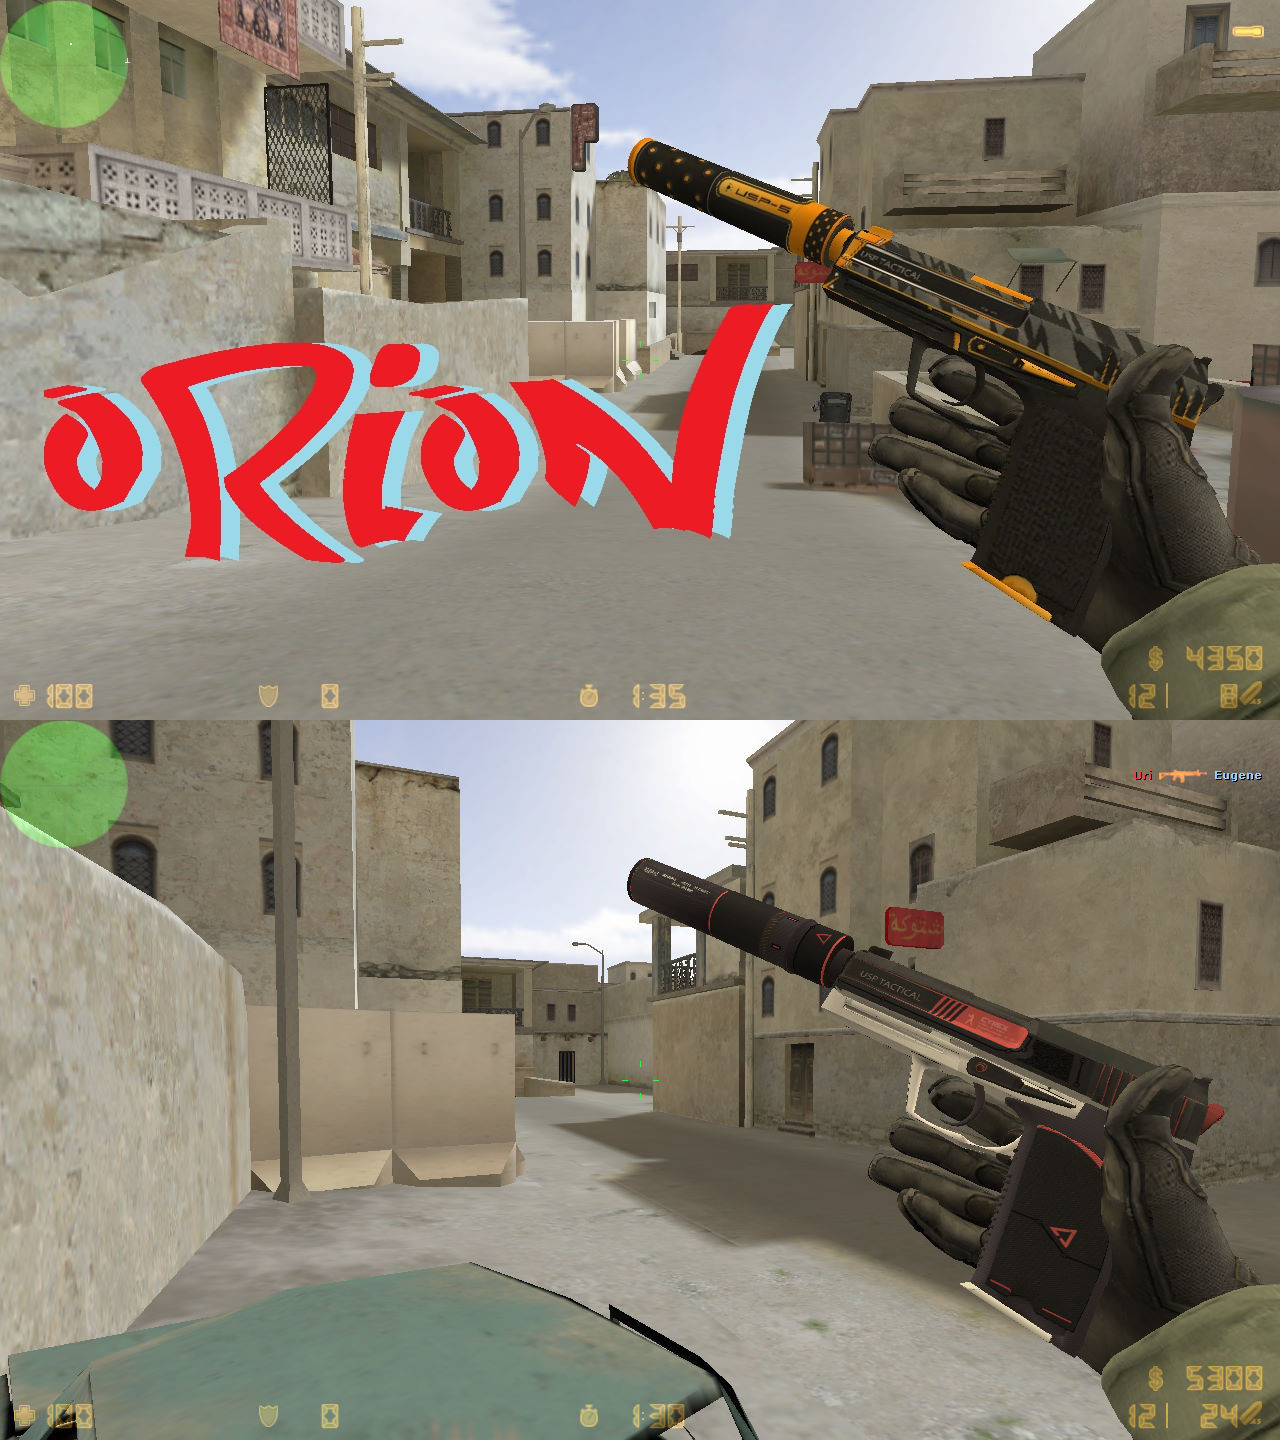 Модели USP «Orion and Cyrex» из CS:GO для Counter-Strike 1.6